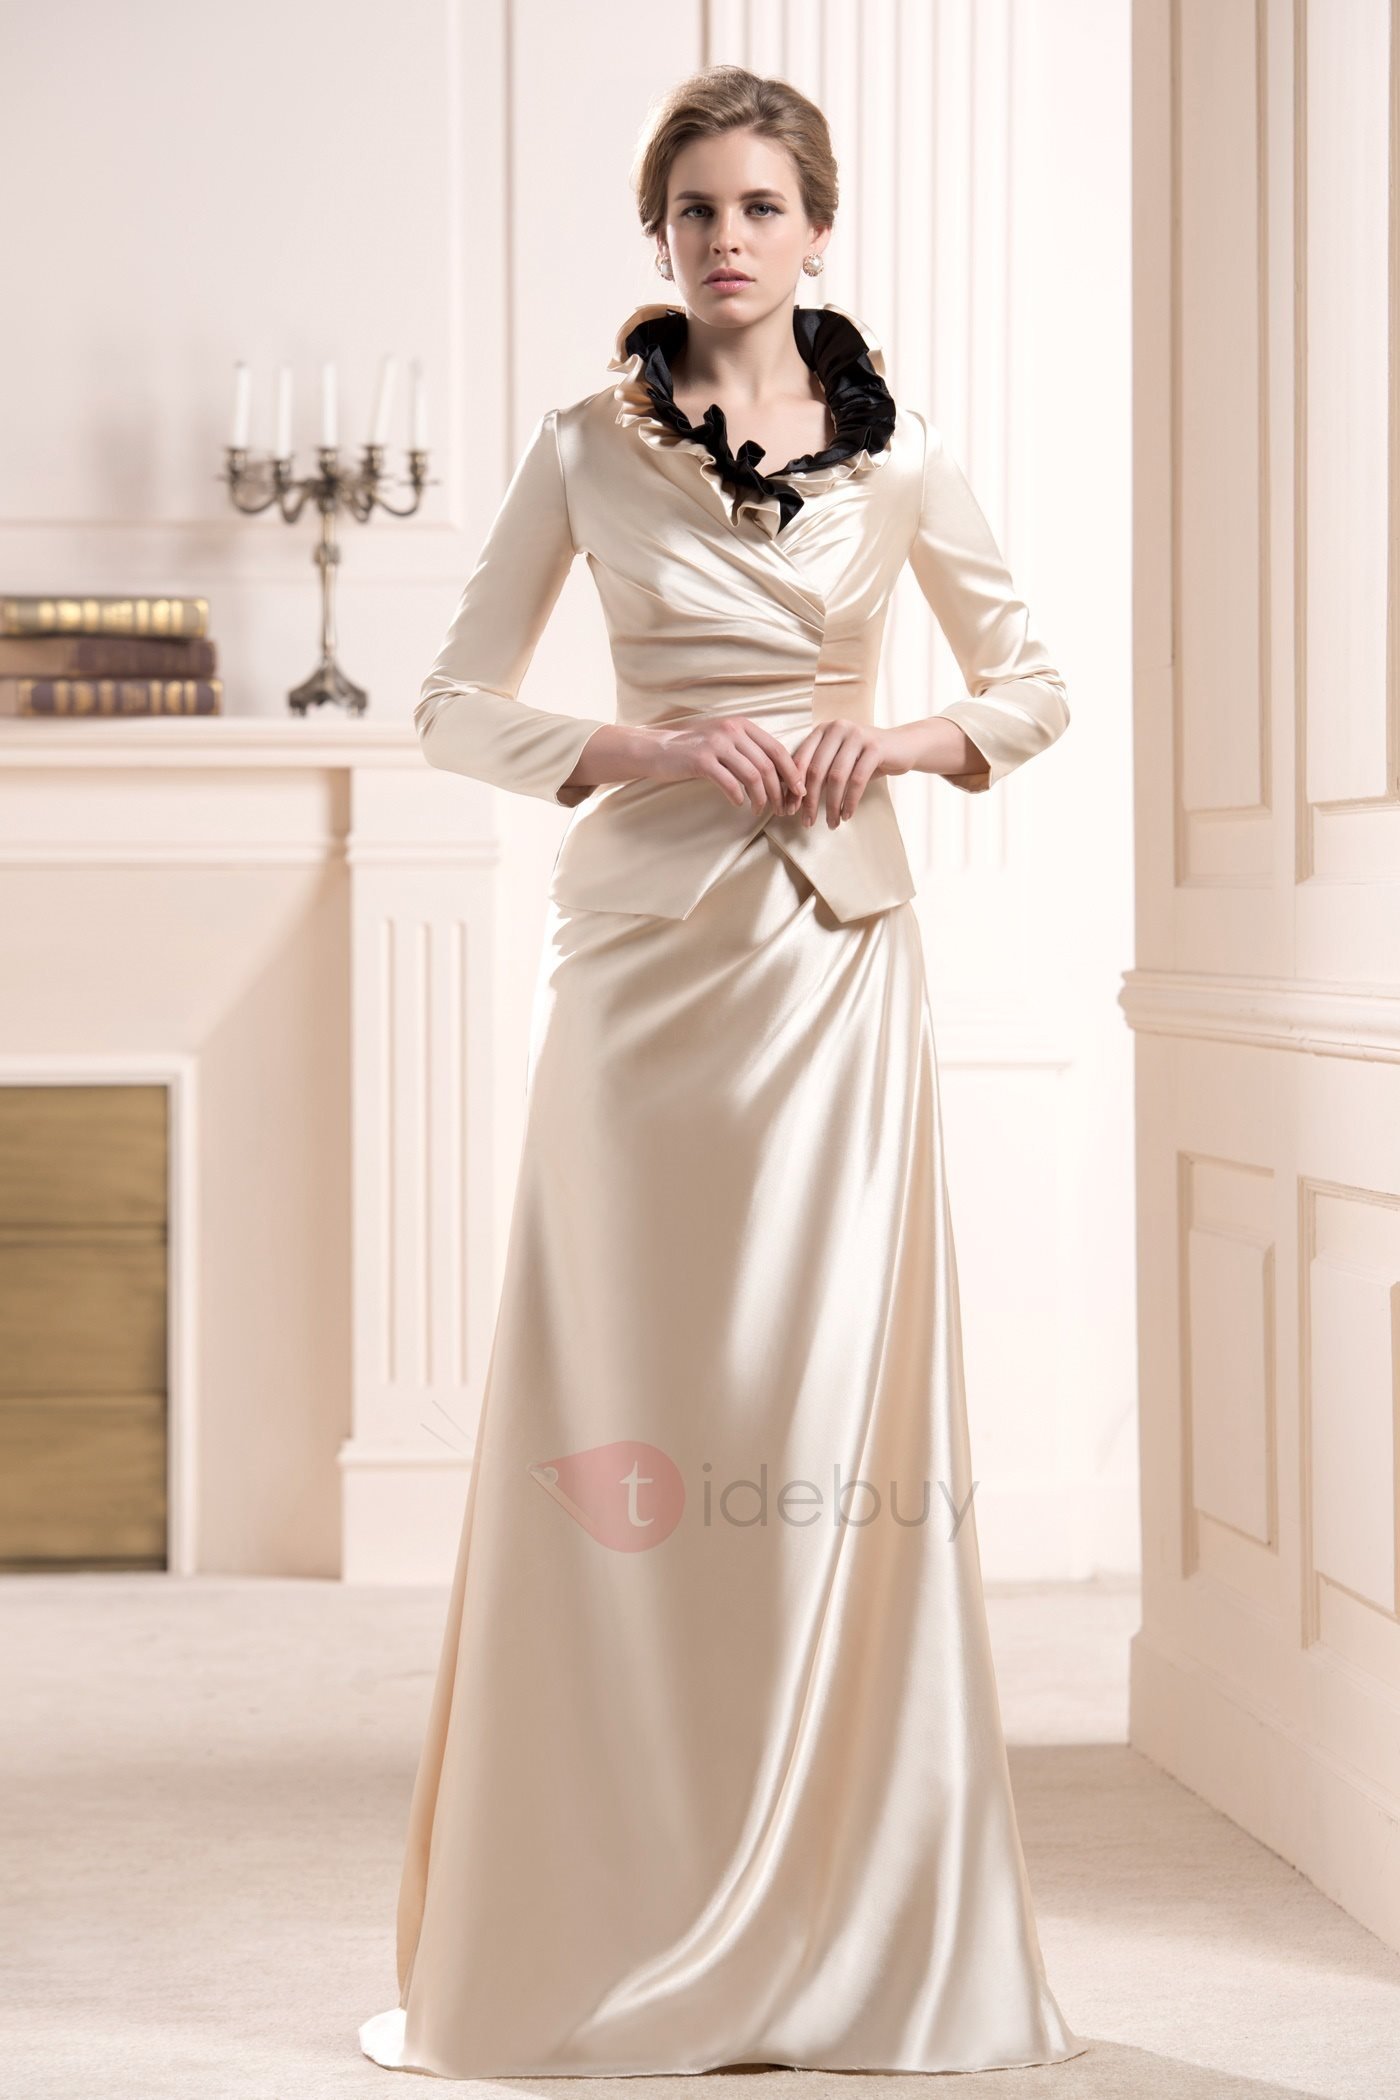 Ruffles Sheath Sleeveless Floor-Length Mother of the Bride Dress